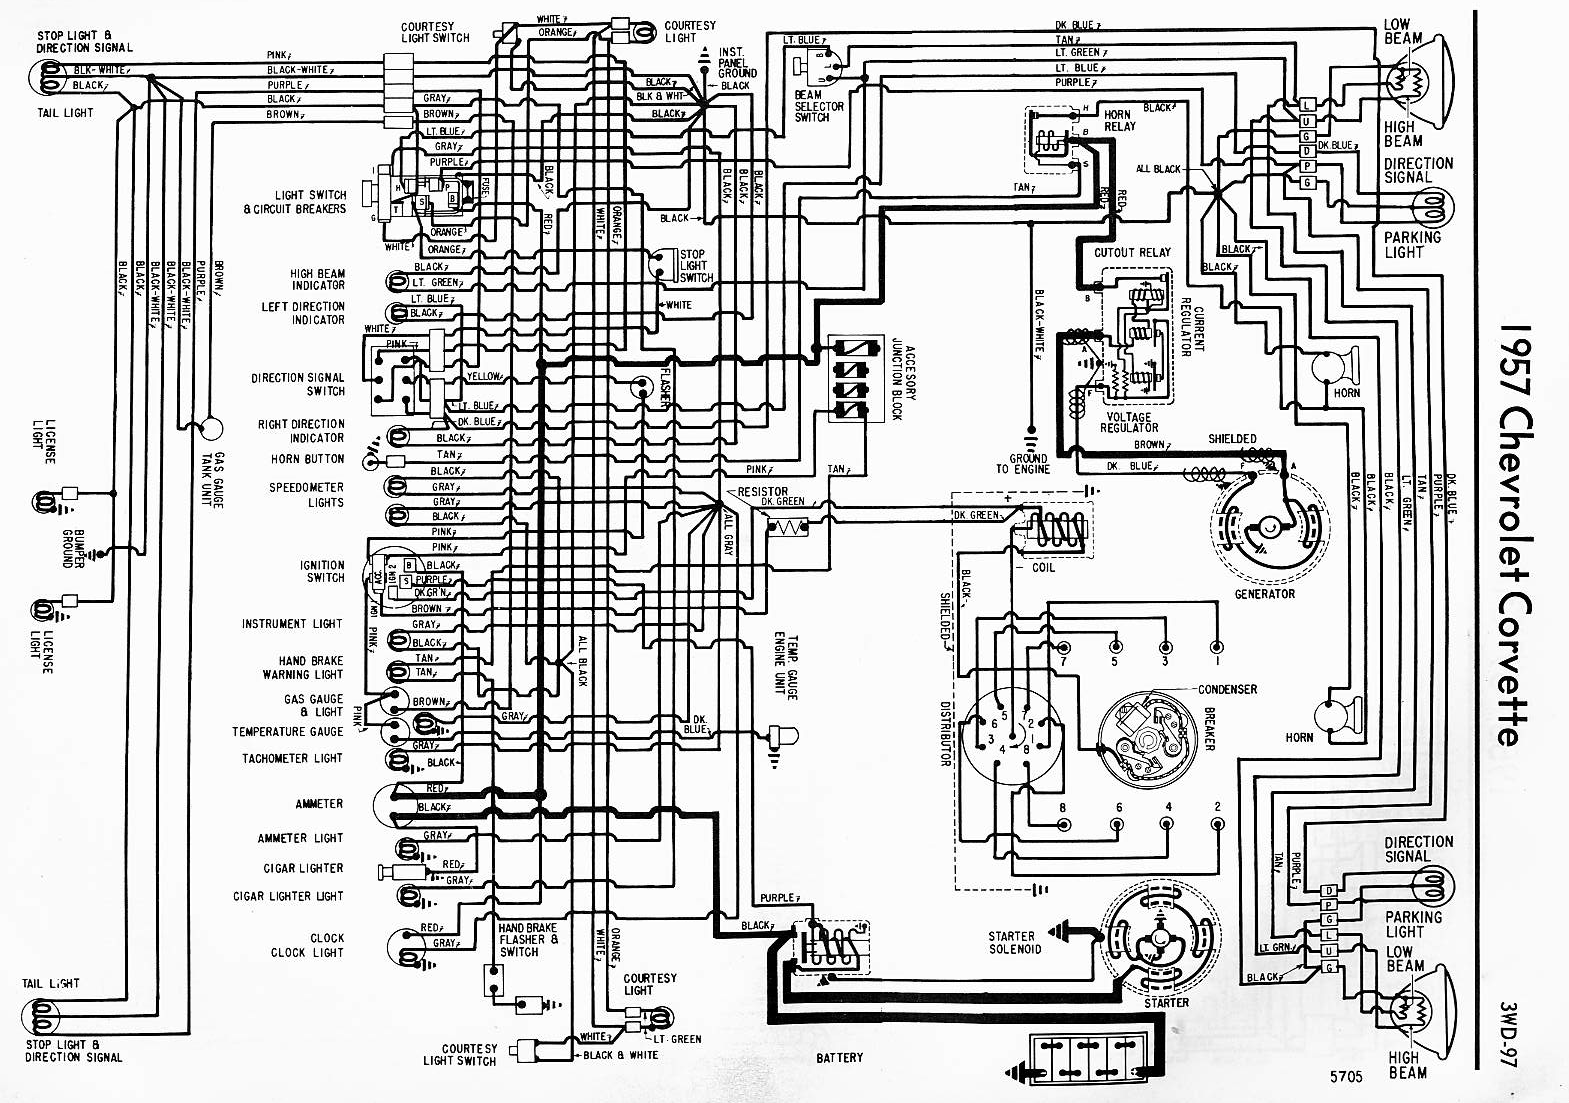 1957 corvette wiring diagram willcox corvette, inc 1992 Corvette Fuel System Diagram